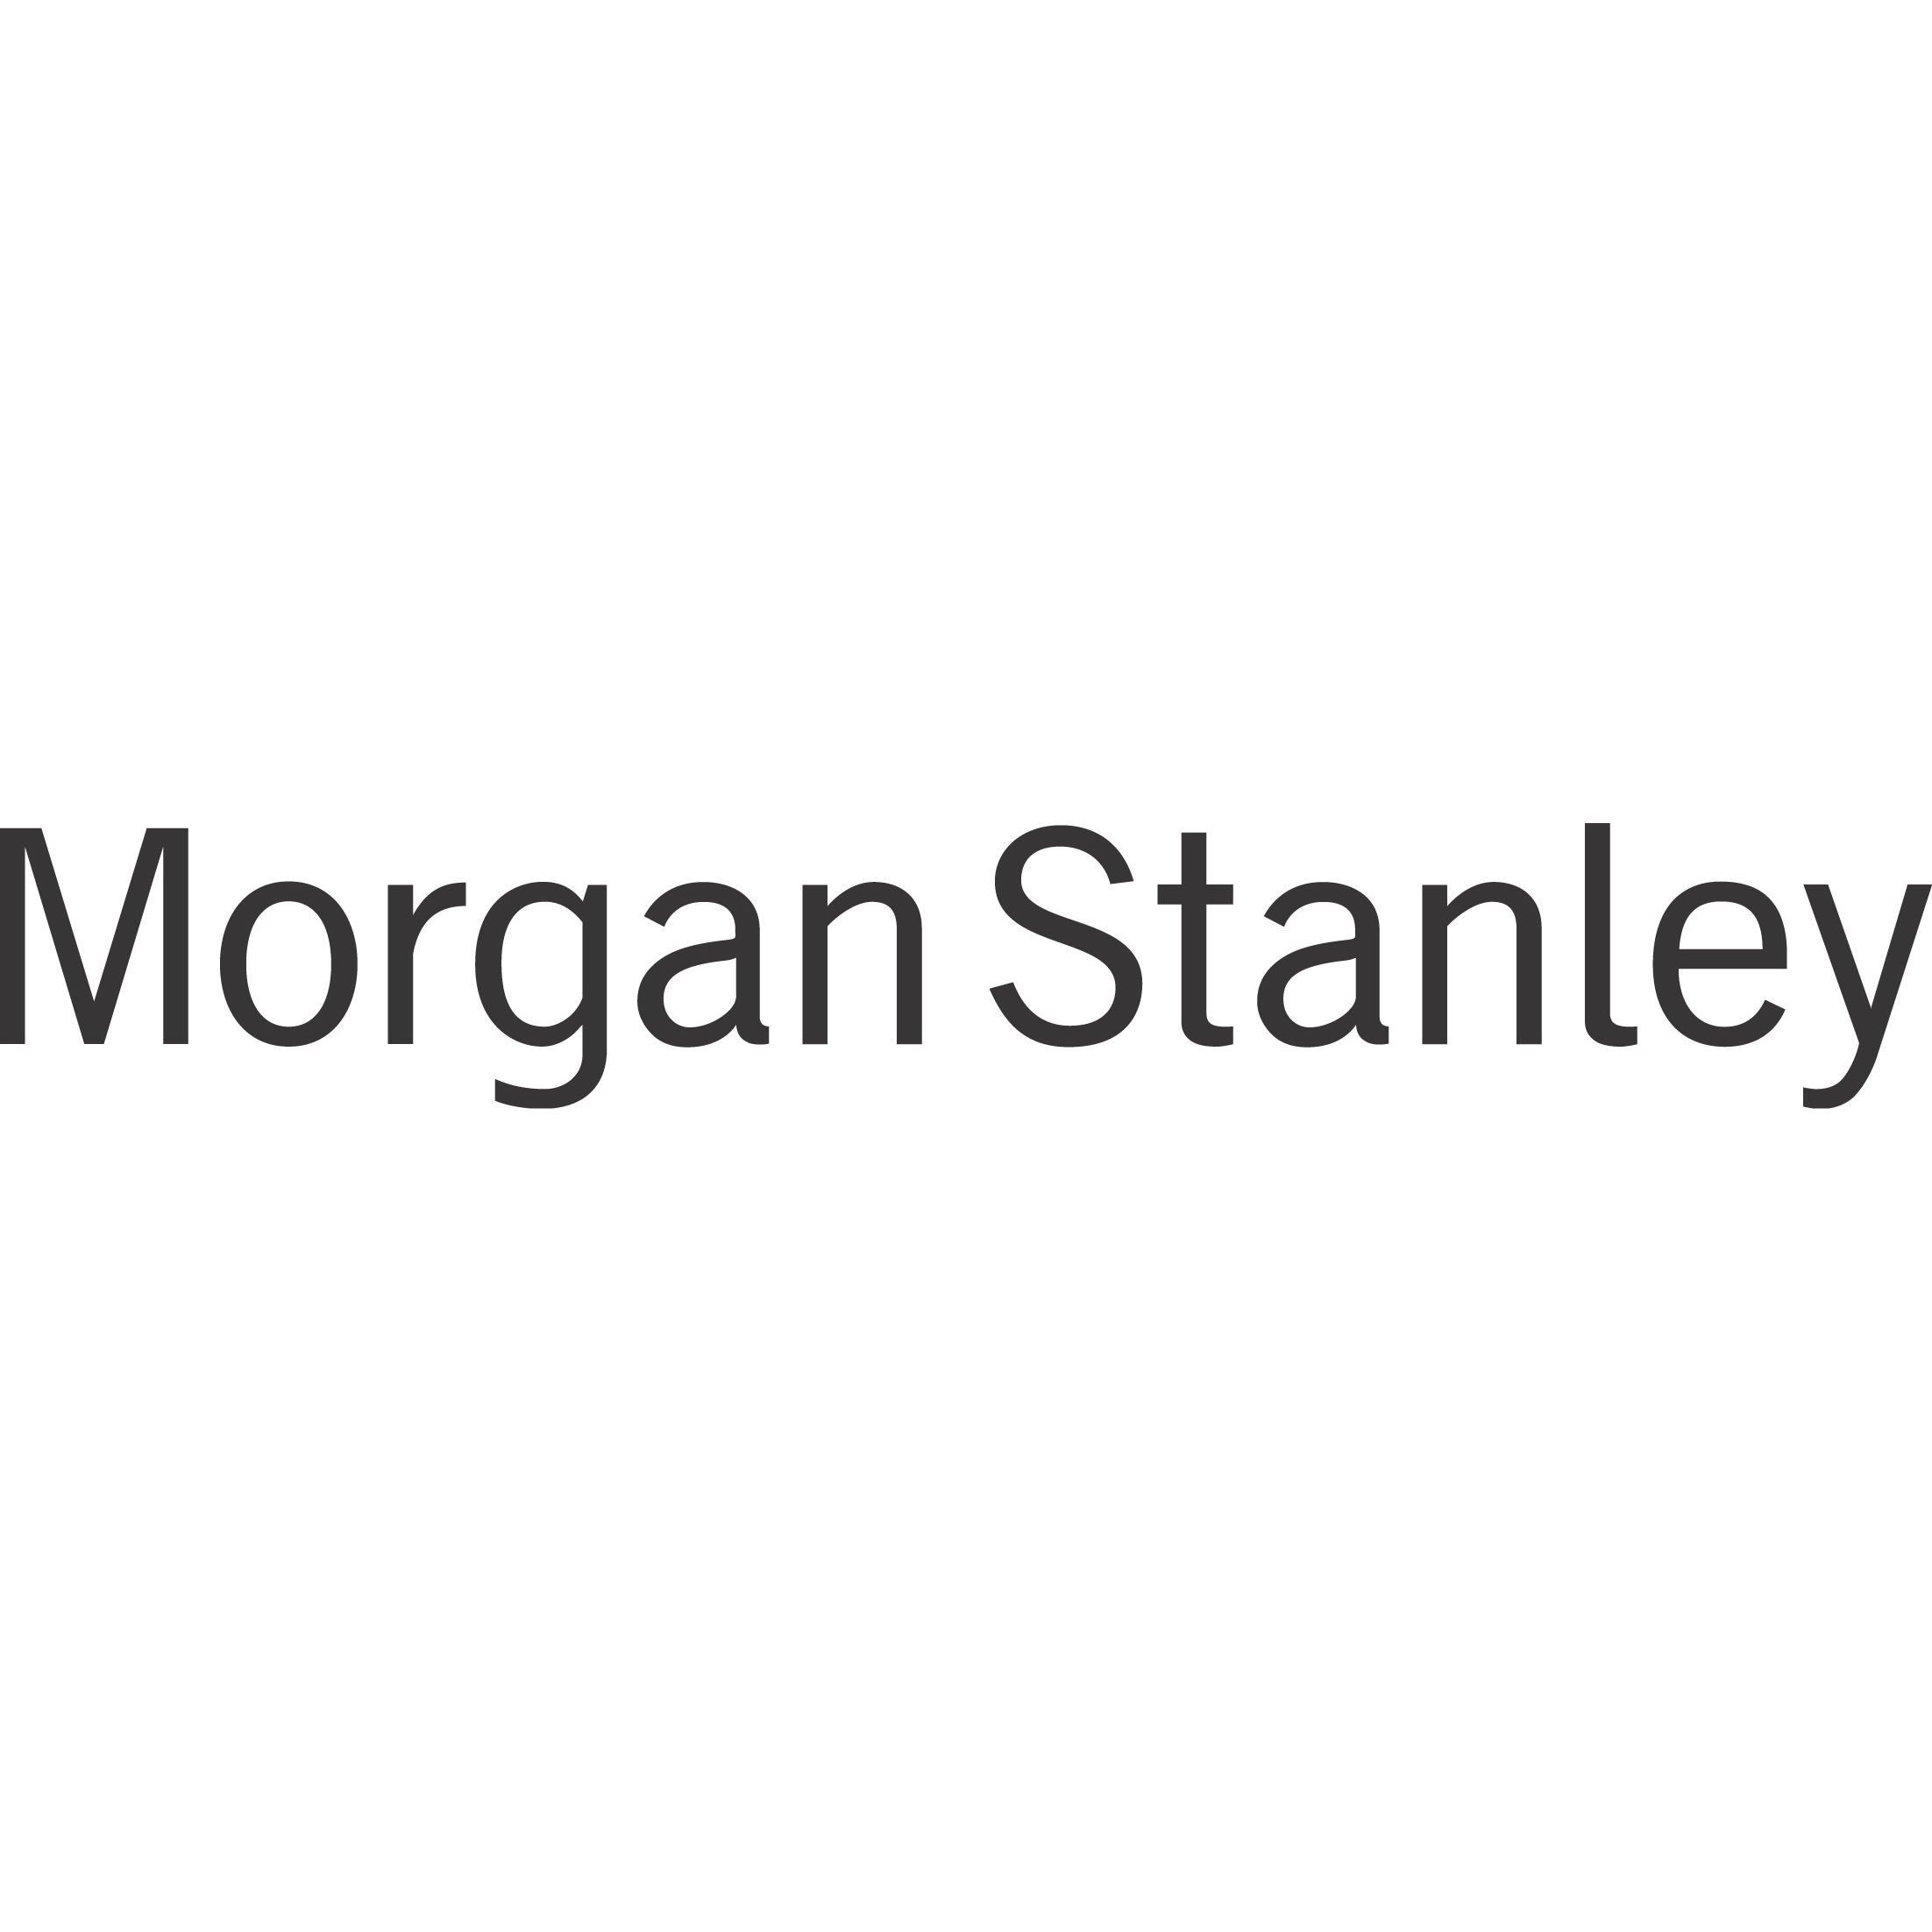 Brady Gallagher - Morgan Stanley | Financial Advisor in Baltimore,Maryland